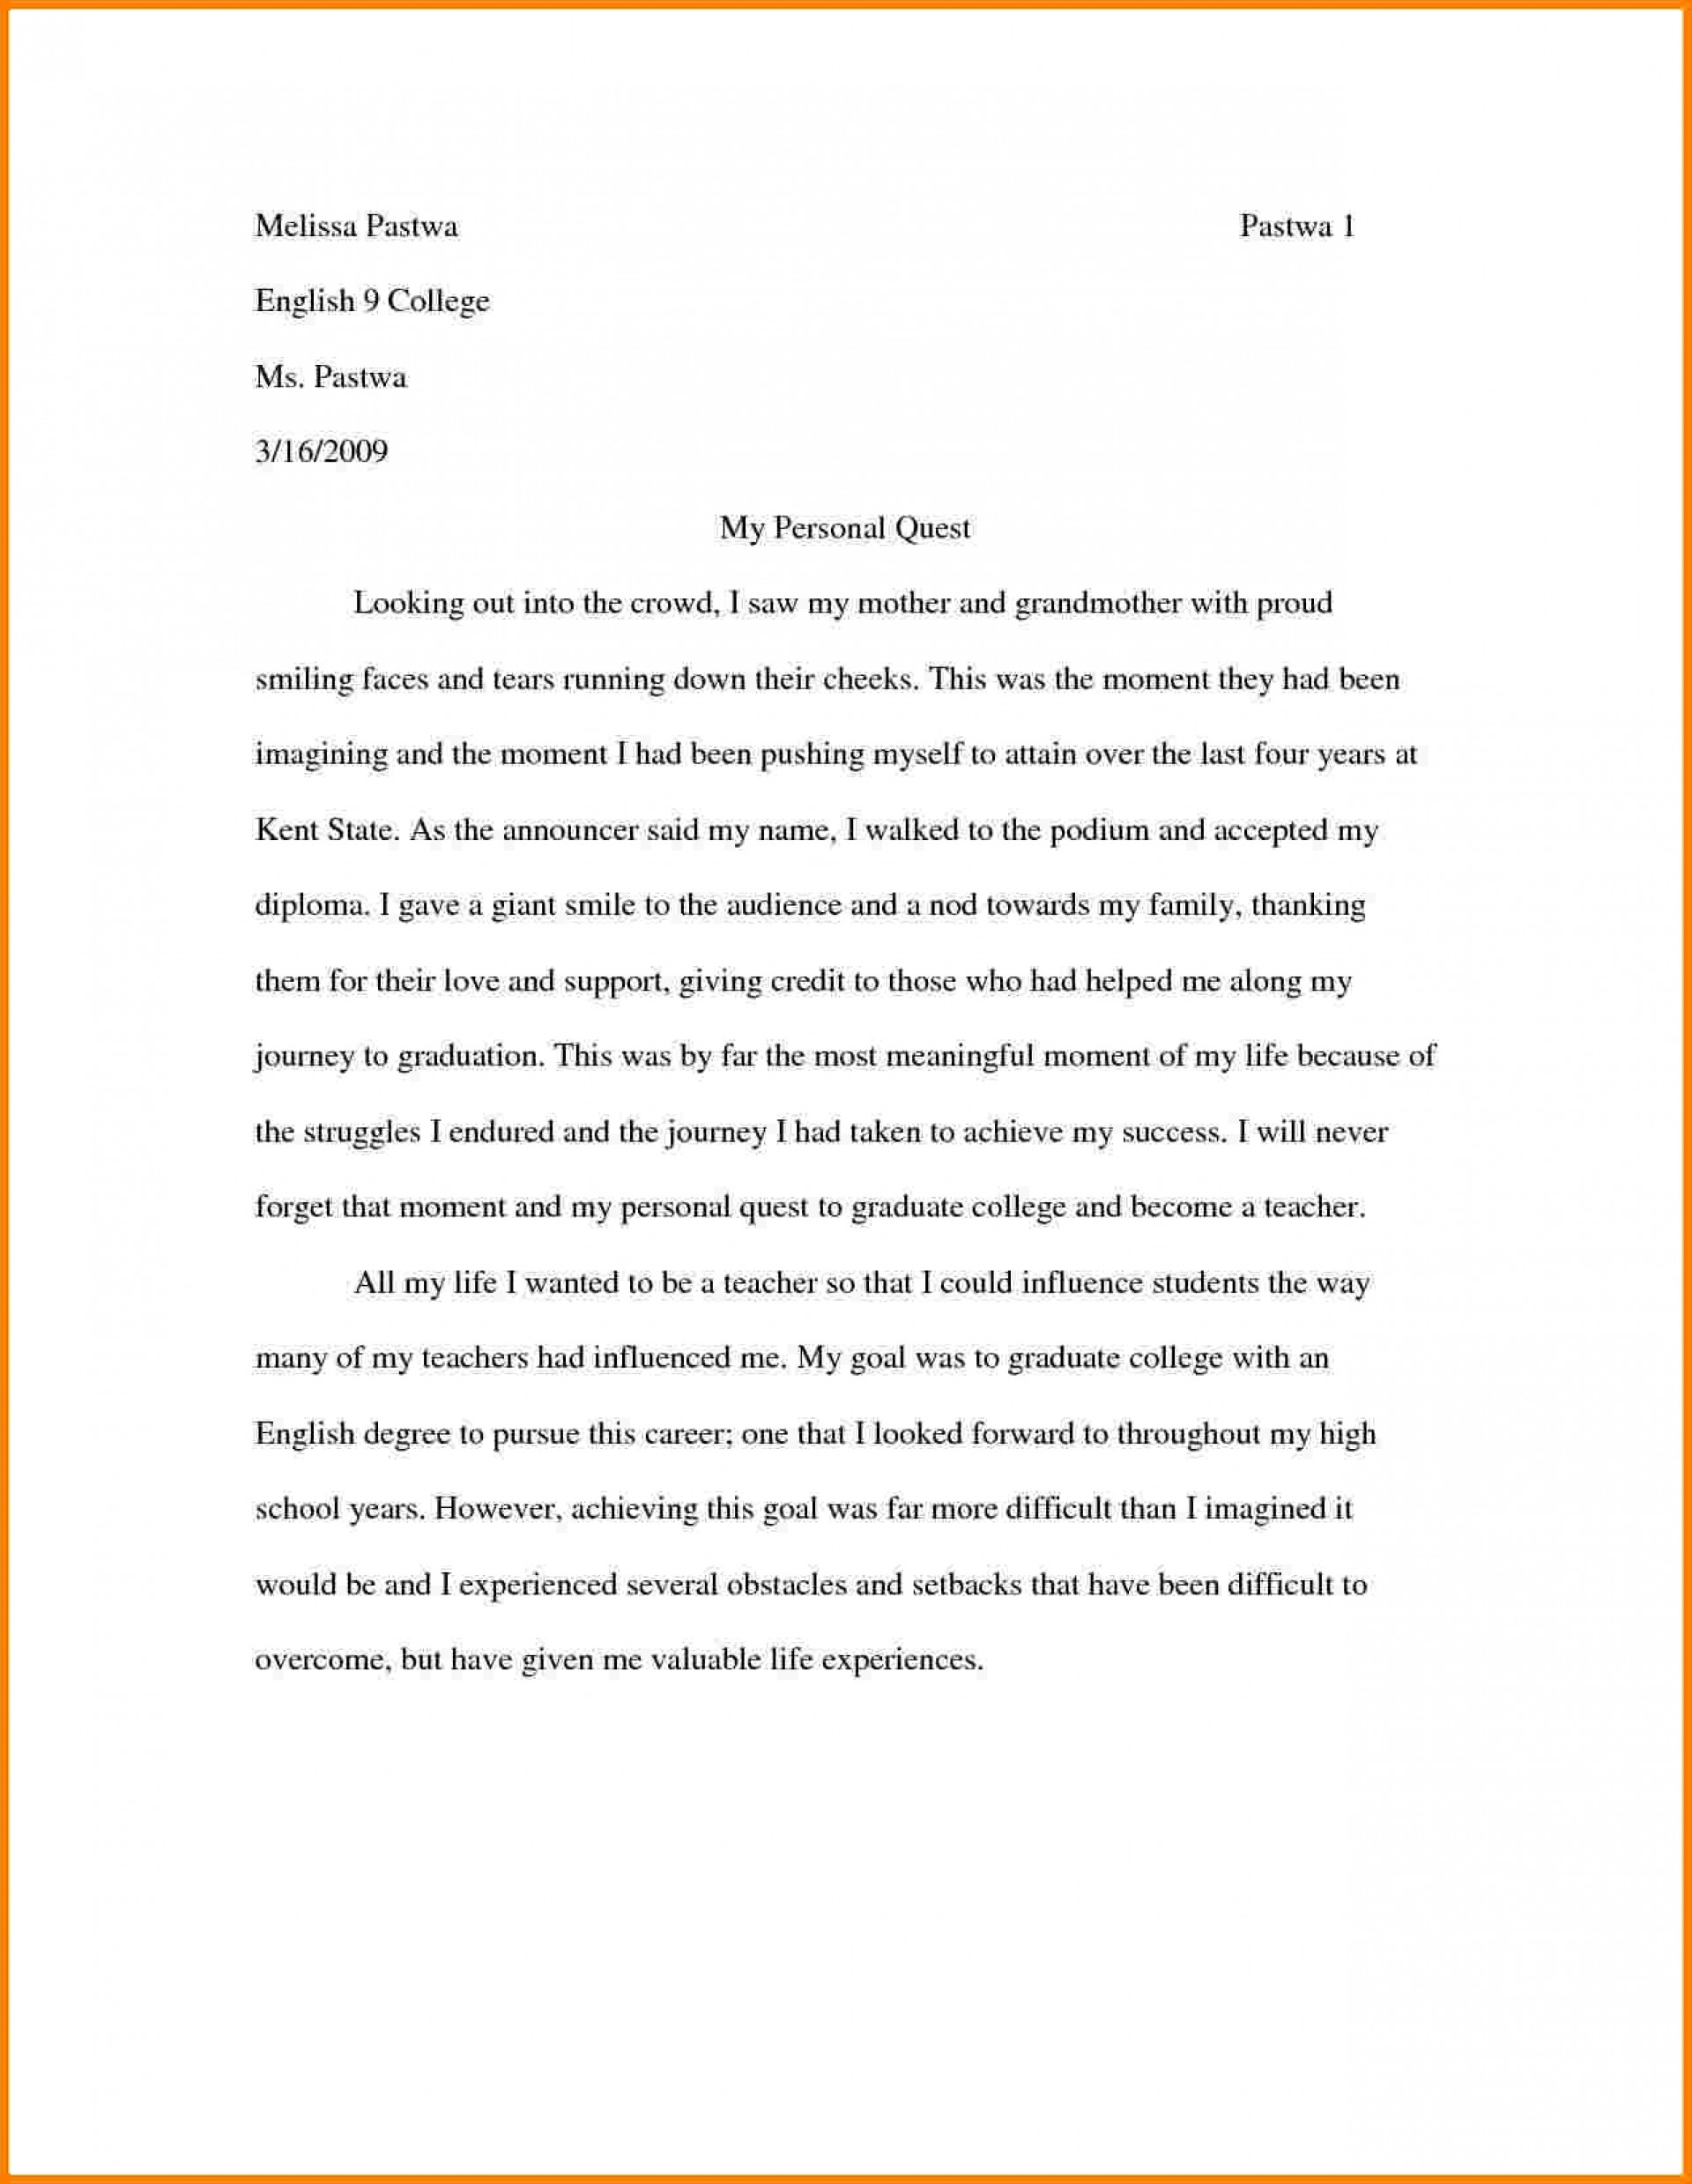 014 3341381556 How To Write Proposal Argument Essay What Is Excellent A 1920